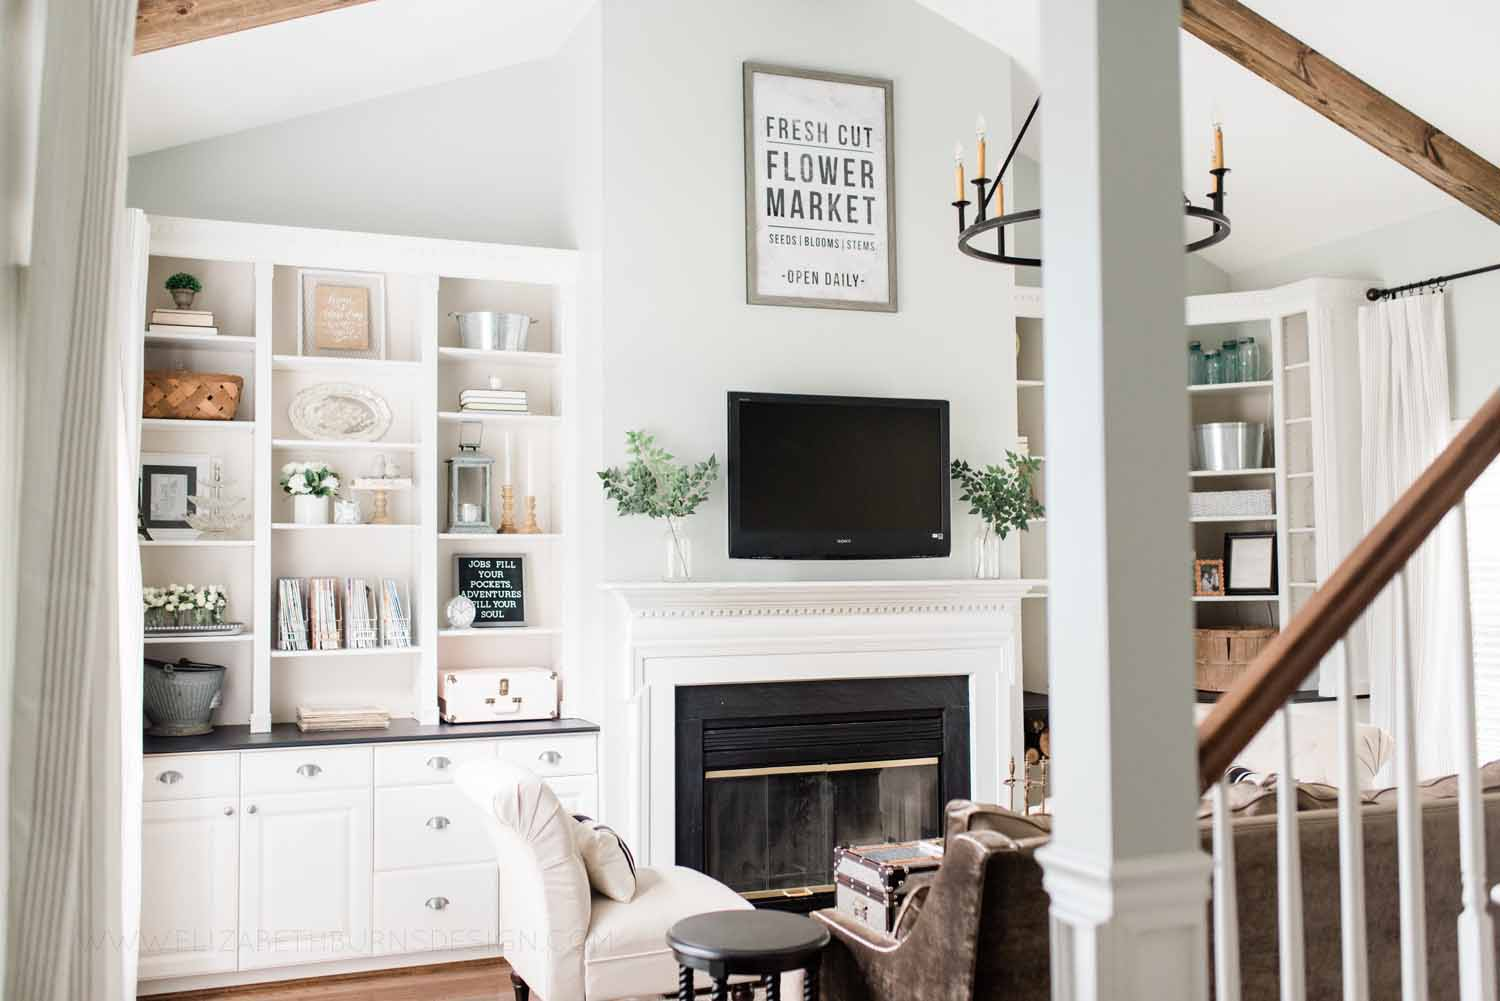 Elizabeth Burns Design Raleigh Interior Designer 1990s house remodel before and after Sherwin Williams Silver Strand SW 7057 Living Room with DIY Beams Budget Renovation (2).jpg